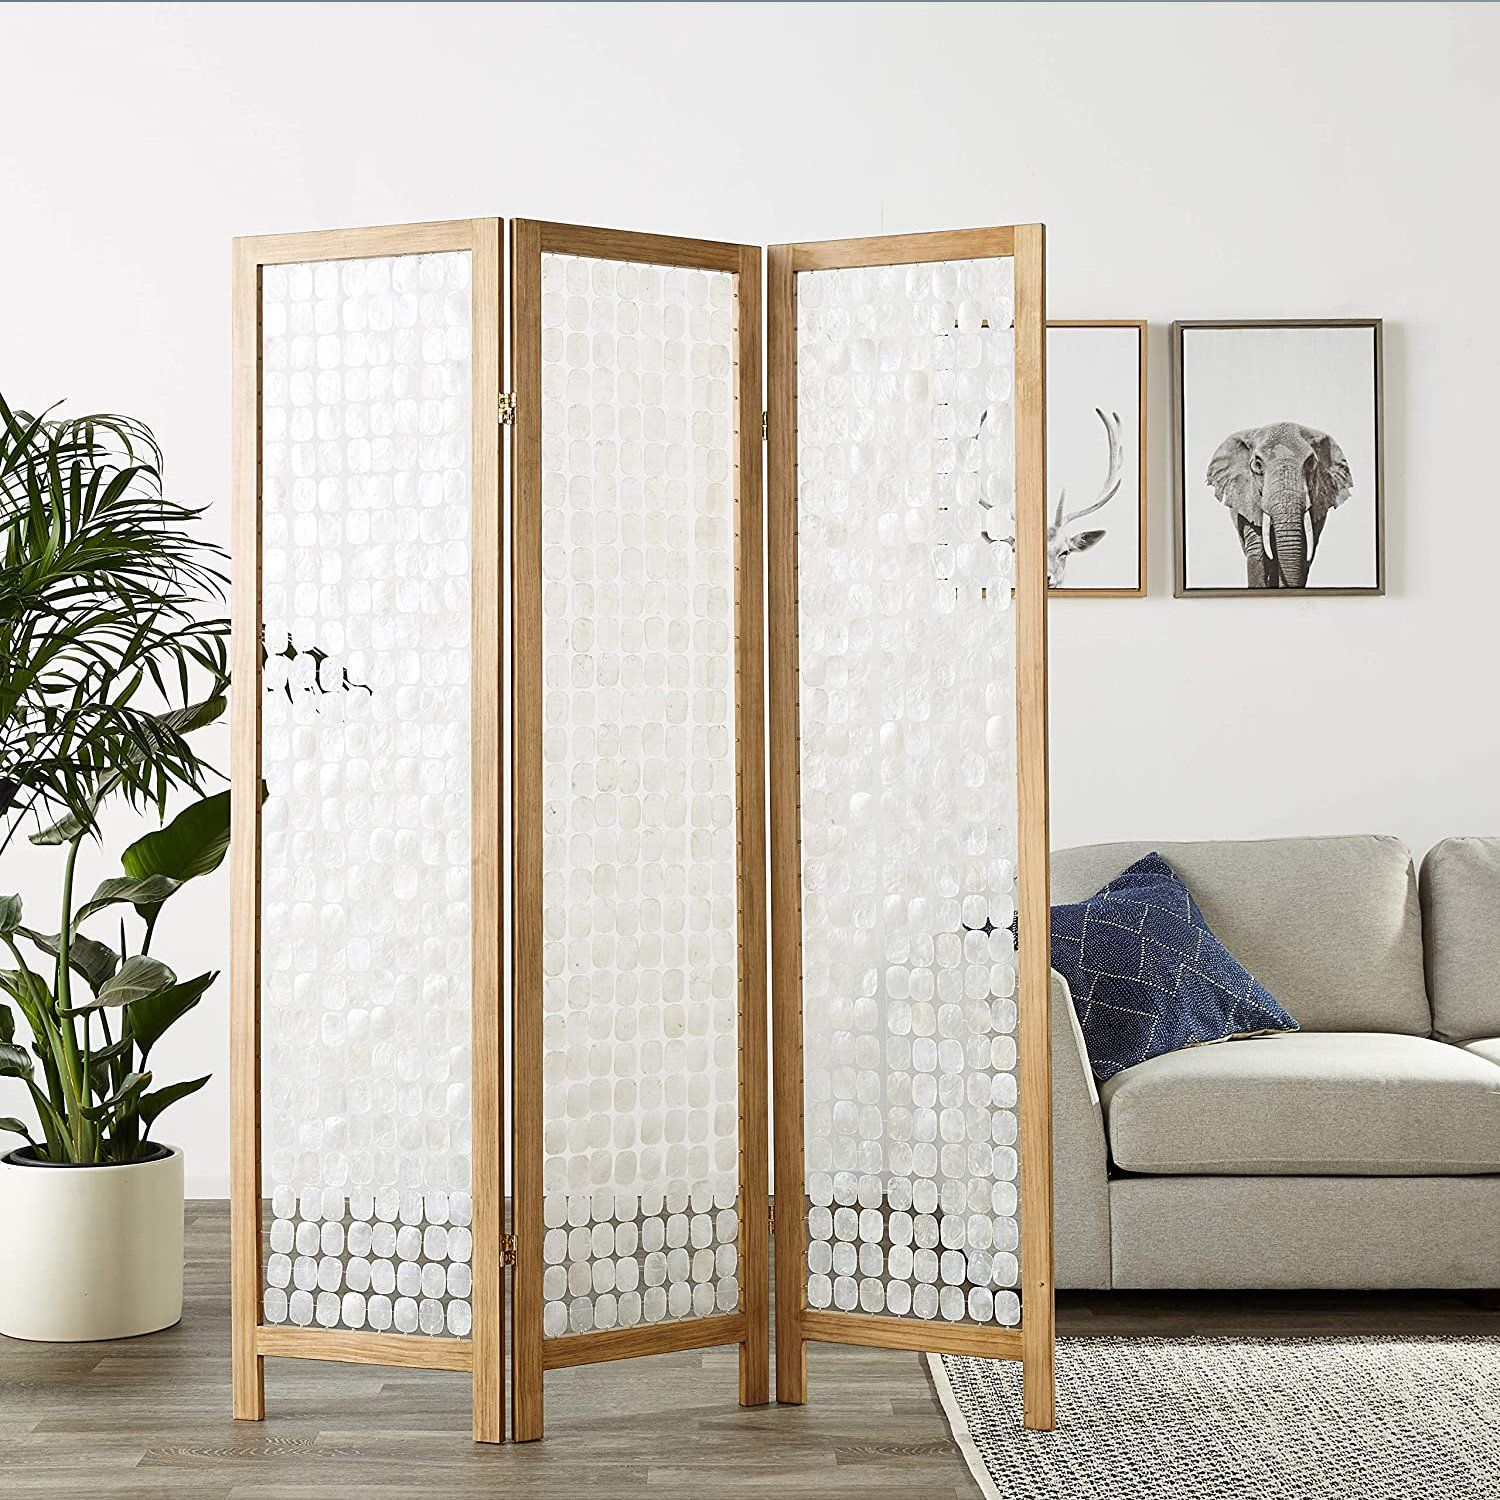 Aurora Capiz Shell Room Divider Screens HomeRoots